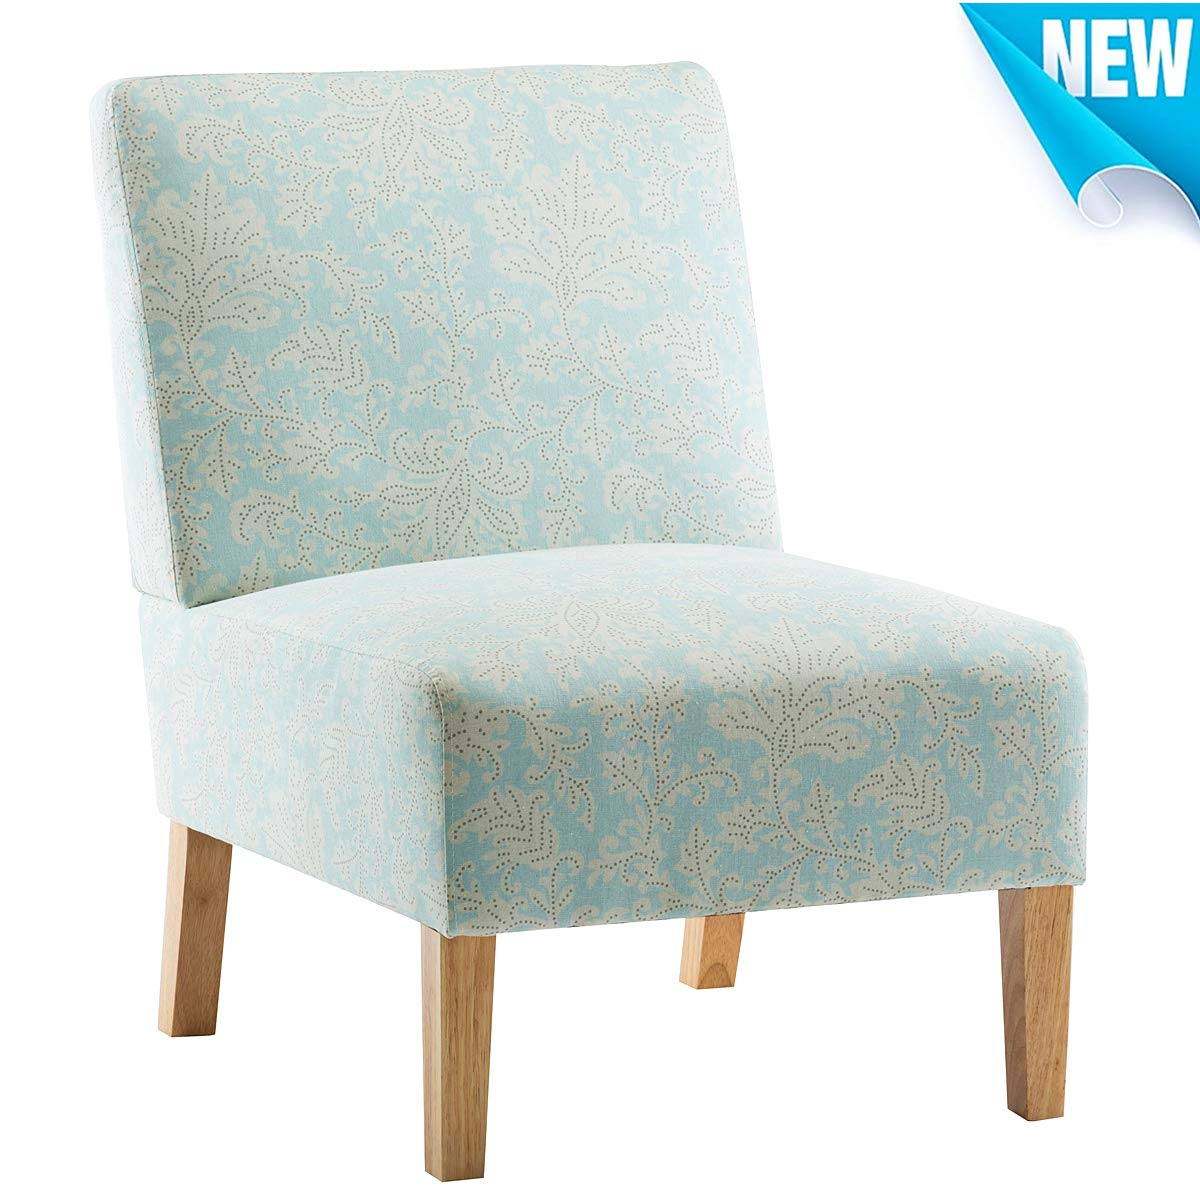 Living Room Armless Accent Chair, Norcia Bedroom Chairs for Adults with Solid Wood Legs Blue Flower Damask